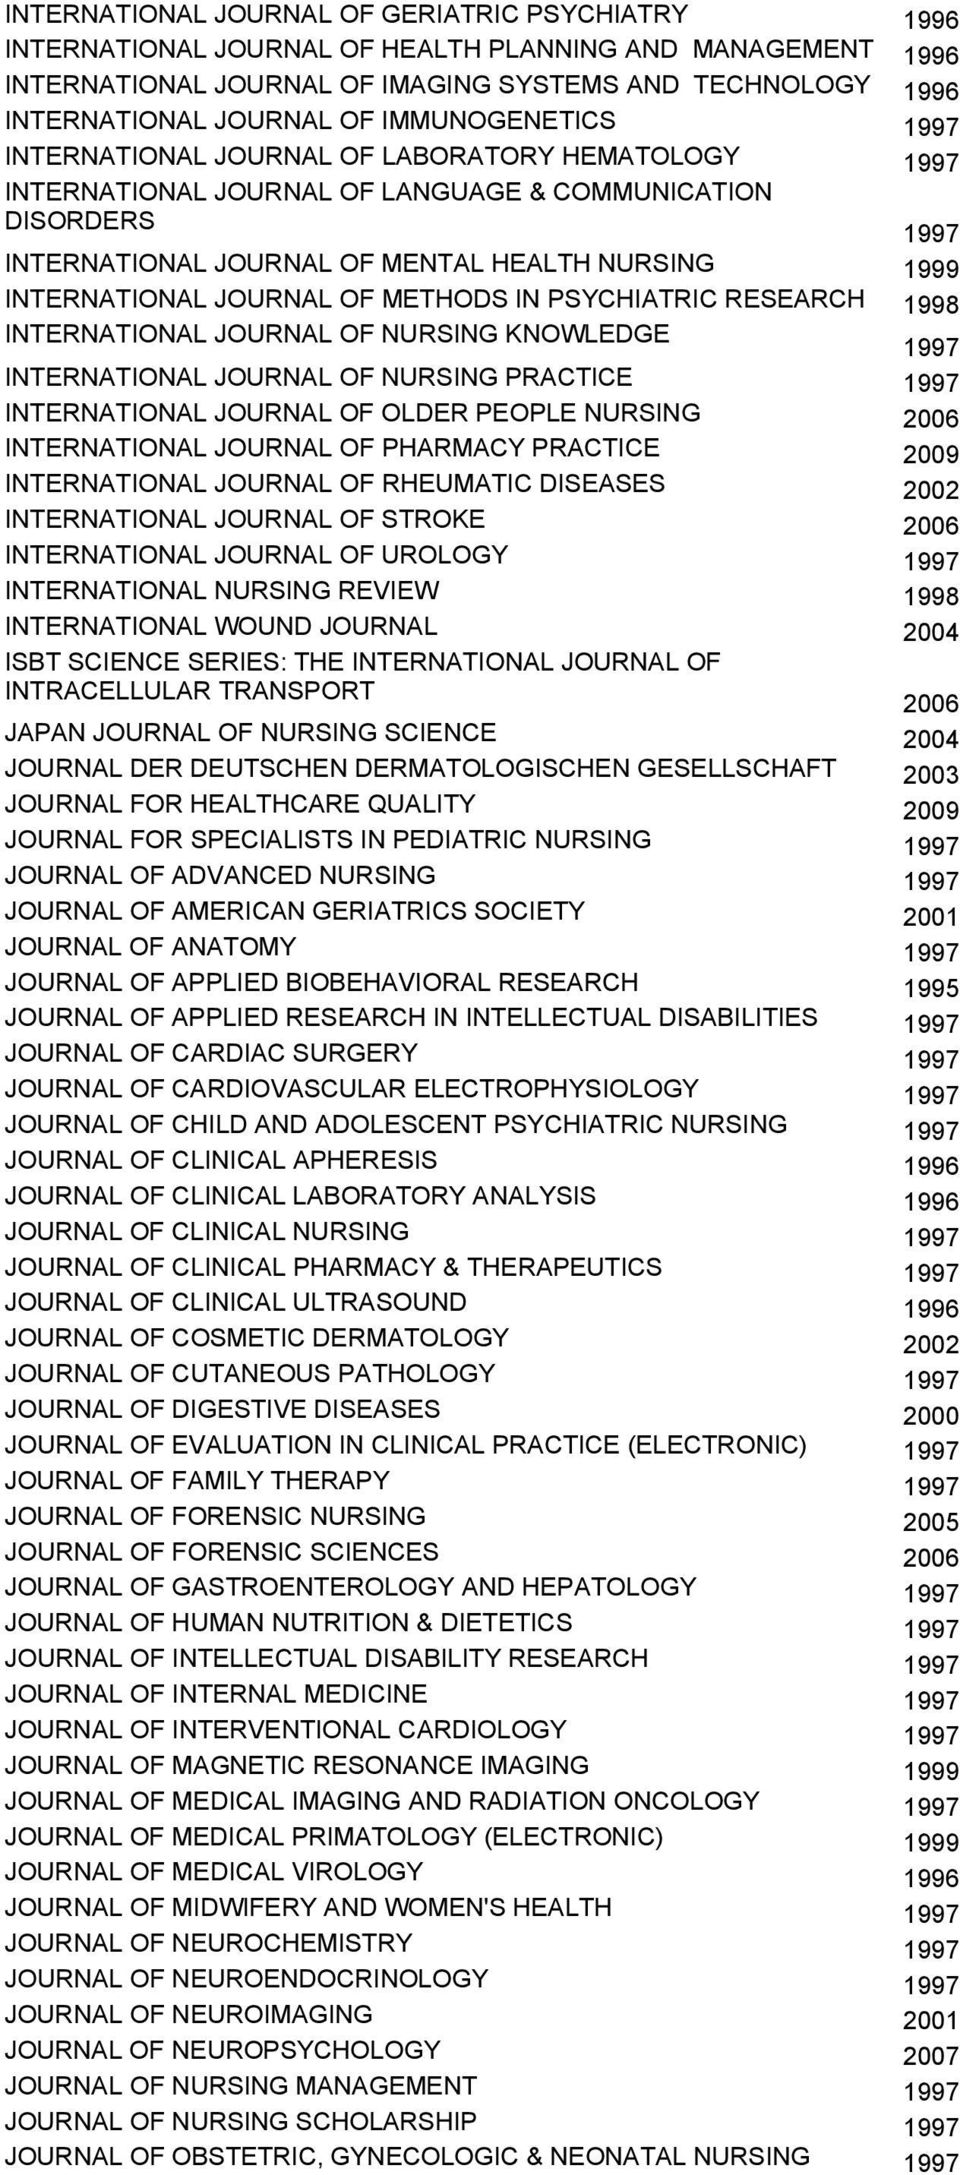 METHODS IN PSYCHIATRIC RESEARCH 1998 INTERNATIONAL JOURNAL OF NURSING KNOWLEDGE INTERNATIONAL JOURNAL OF NURSING PRACTICE INTERNATIONAL JOURNAL OF OLDER PEOPLE NURSING 2006 INTERNATIONAL JOURNAL OF